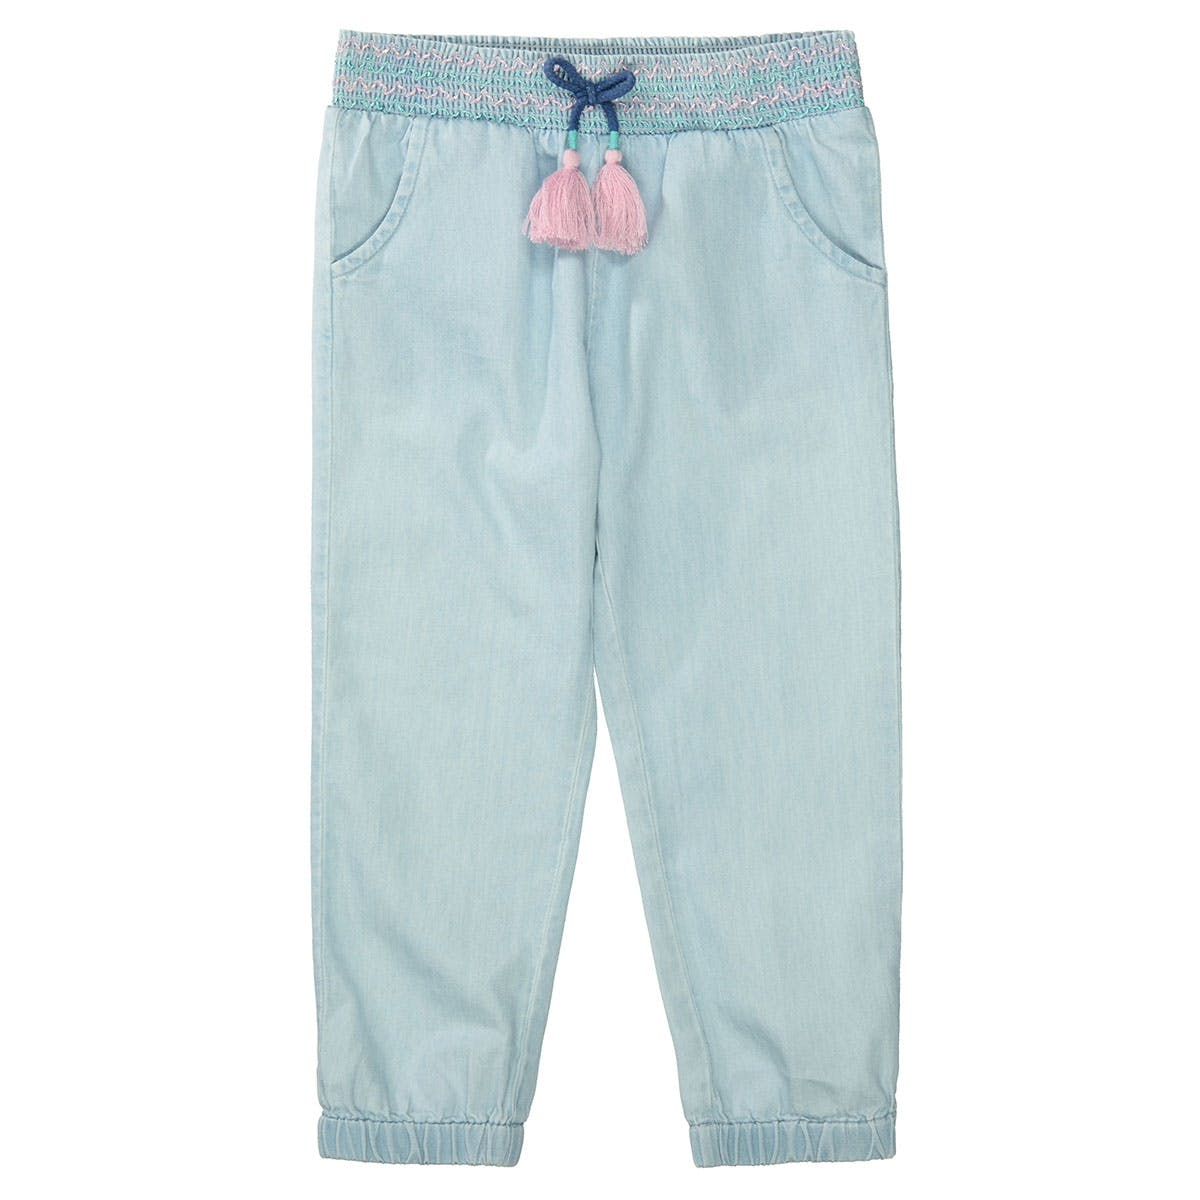 Jumper-Pants in Denim-Optik - Light Blue Denim